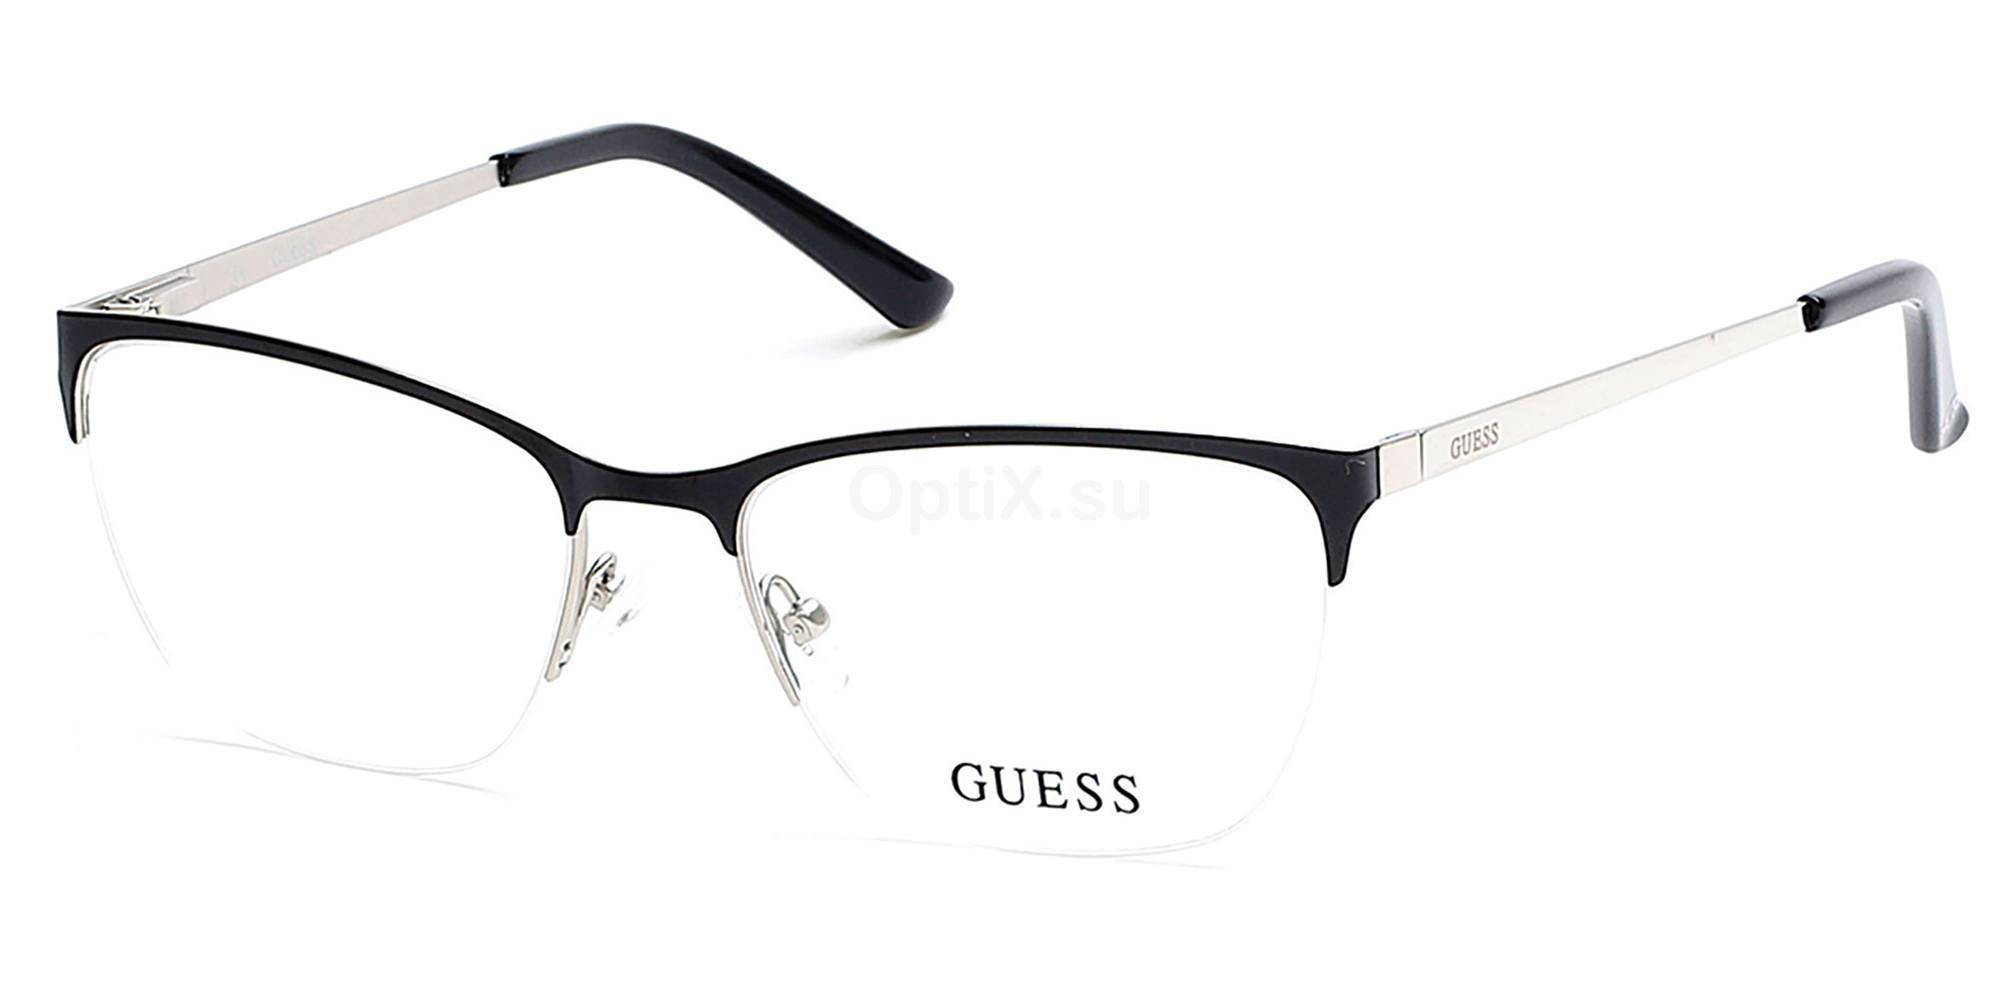 001 GU2543 Glasses, Guess